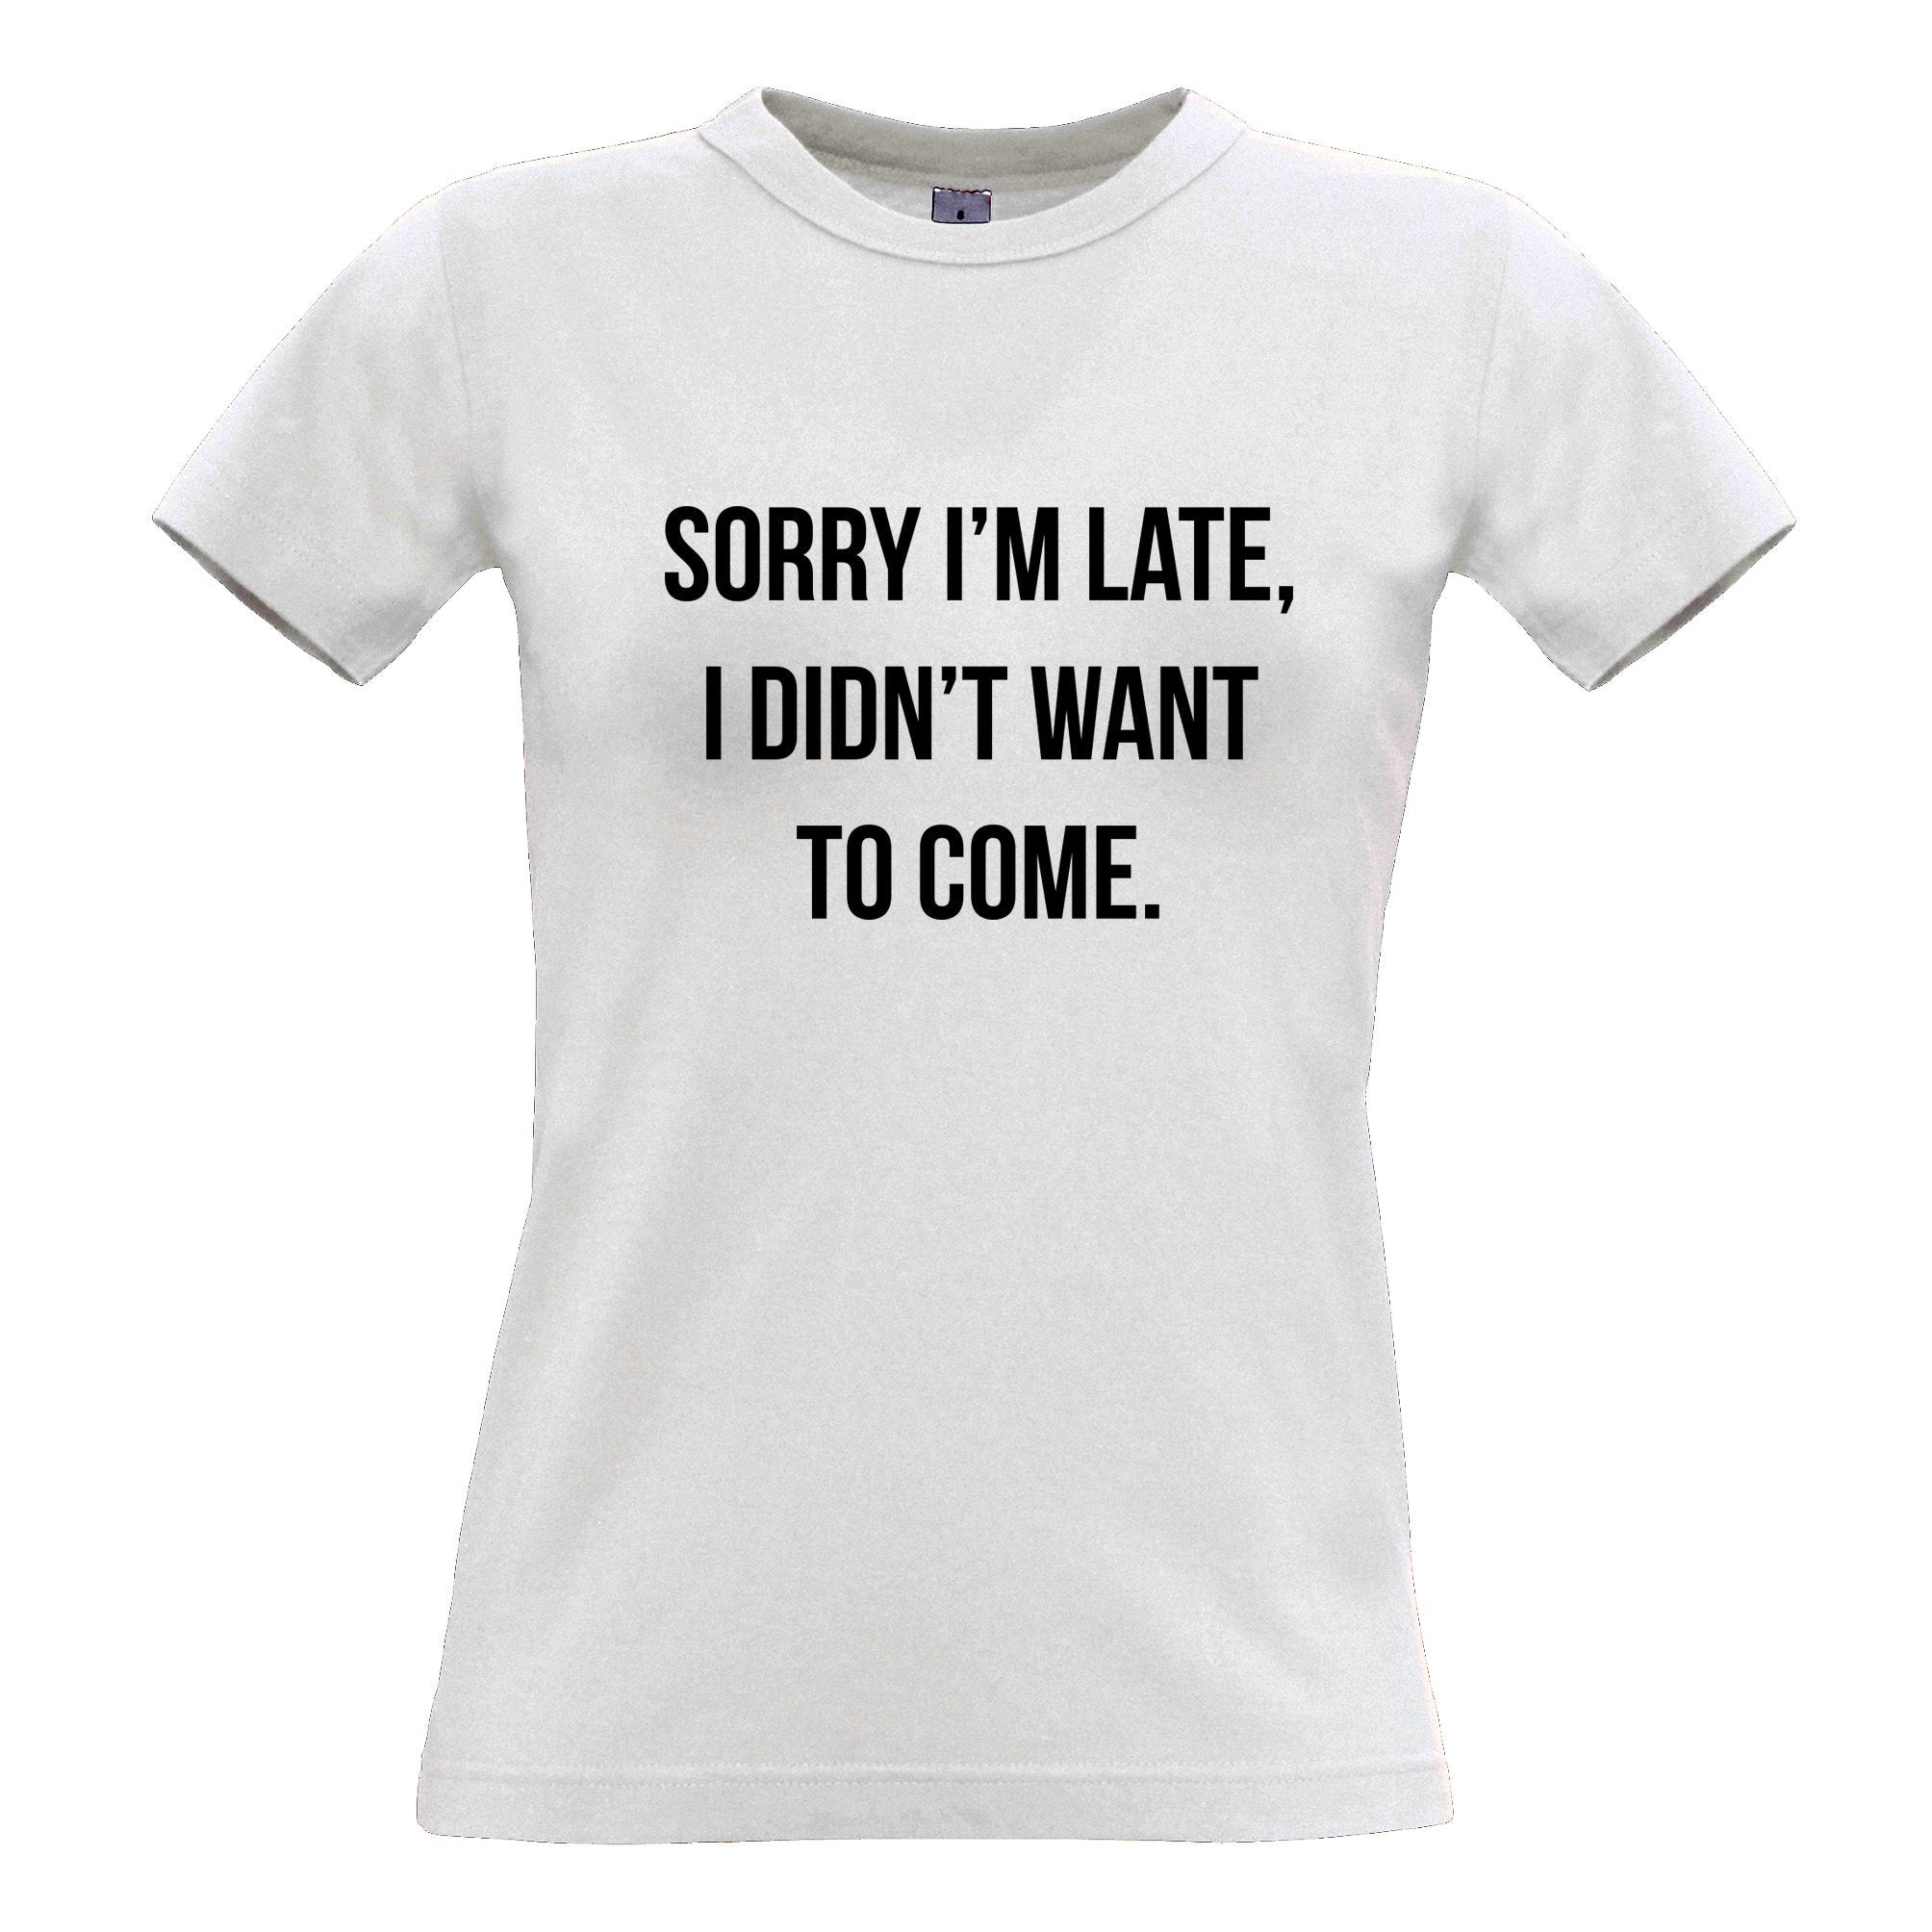 Novelty Womens T Shirt Sorry I'm Late, I Didn't Want To Come